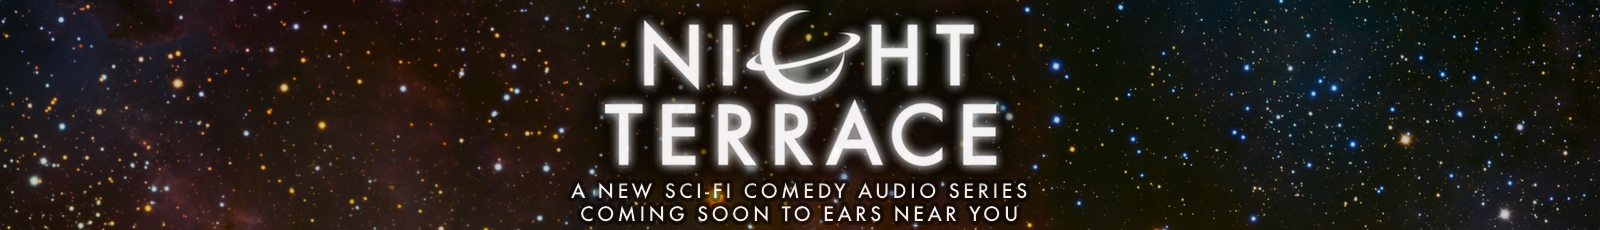 Night Terrace: a new sci-fi comedy audio series coming soon to ears near you